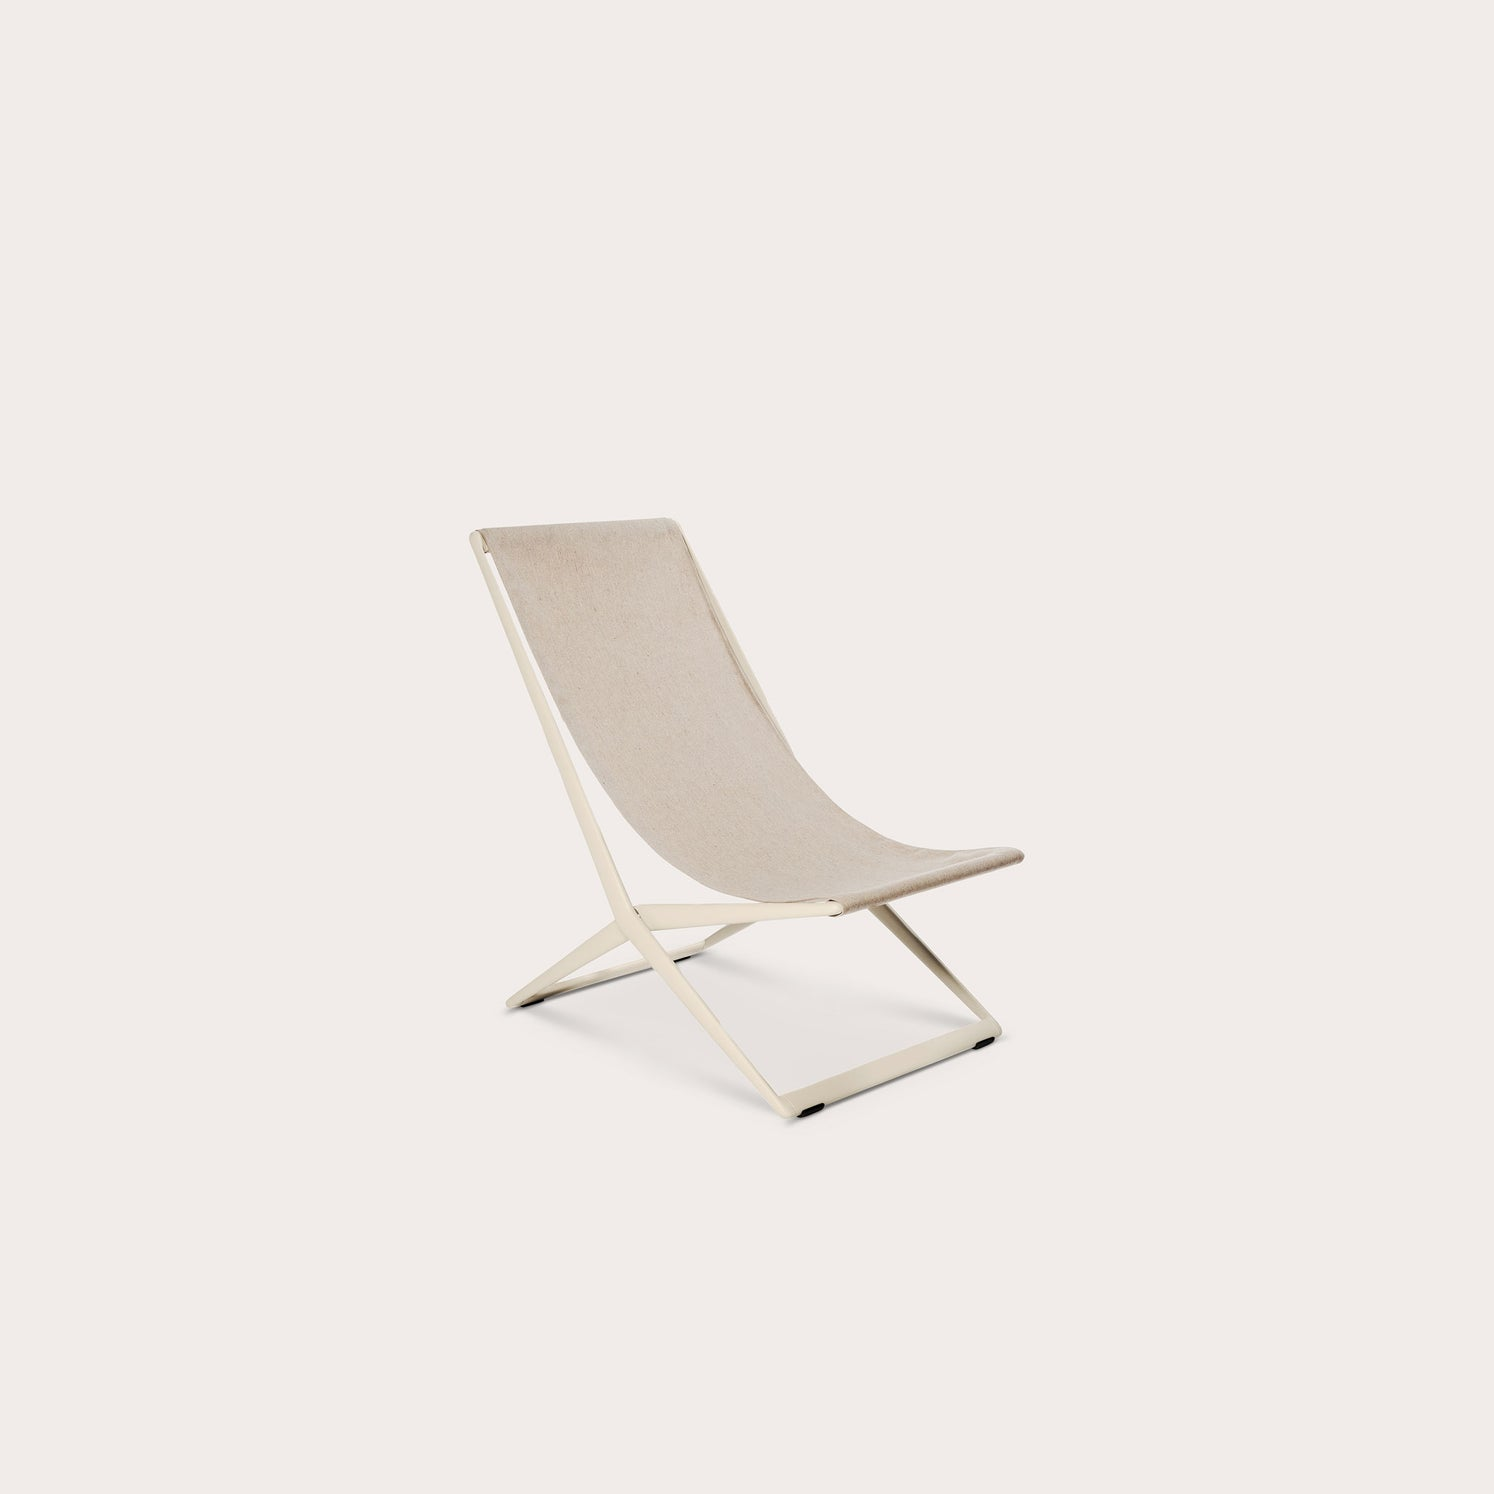 BRANCH Beach Chair Batyline Outdoor Altherr Lievore Molina Designer Furniture Sku: 007-200-11255